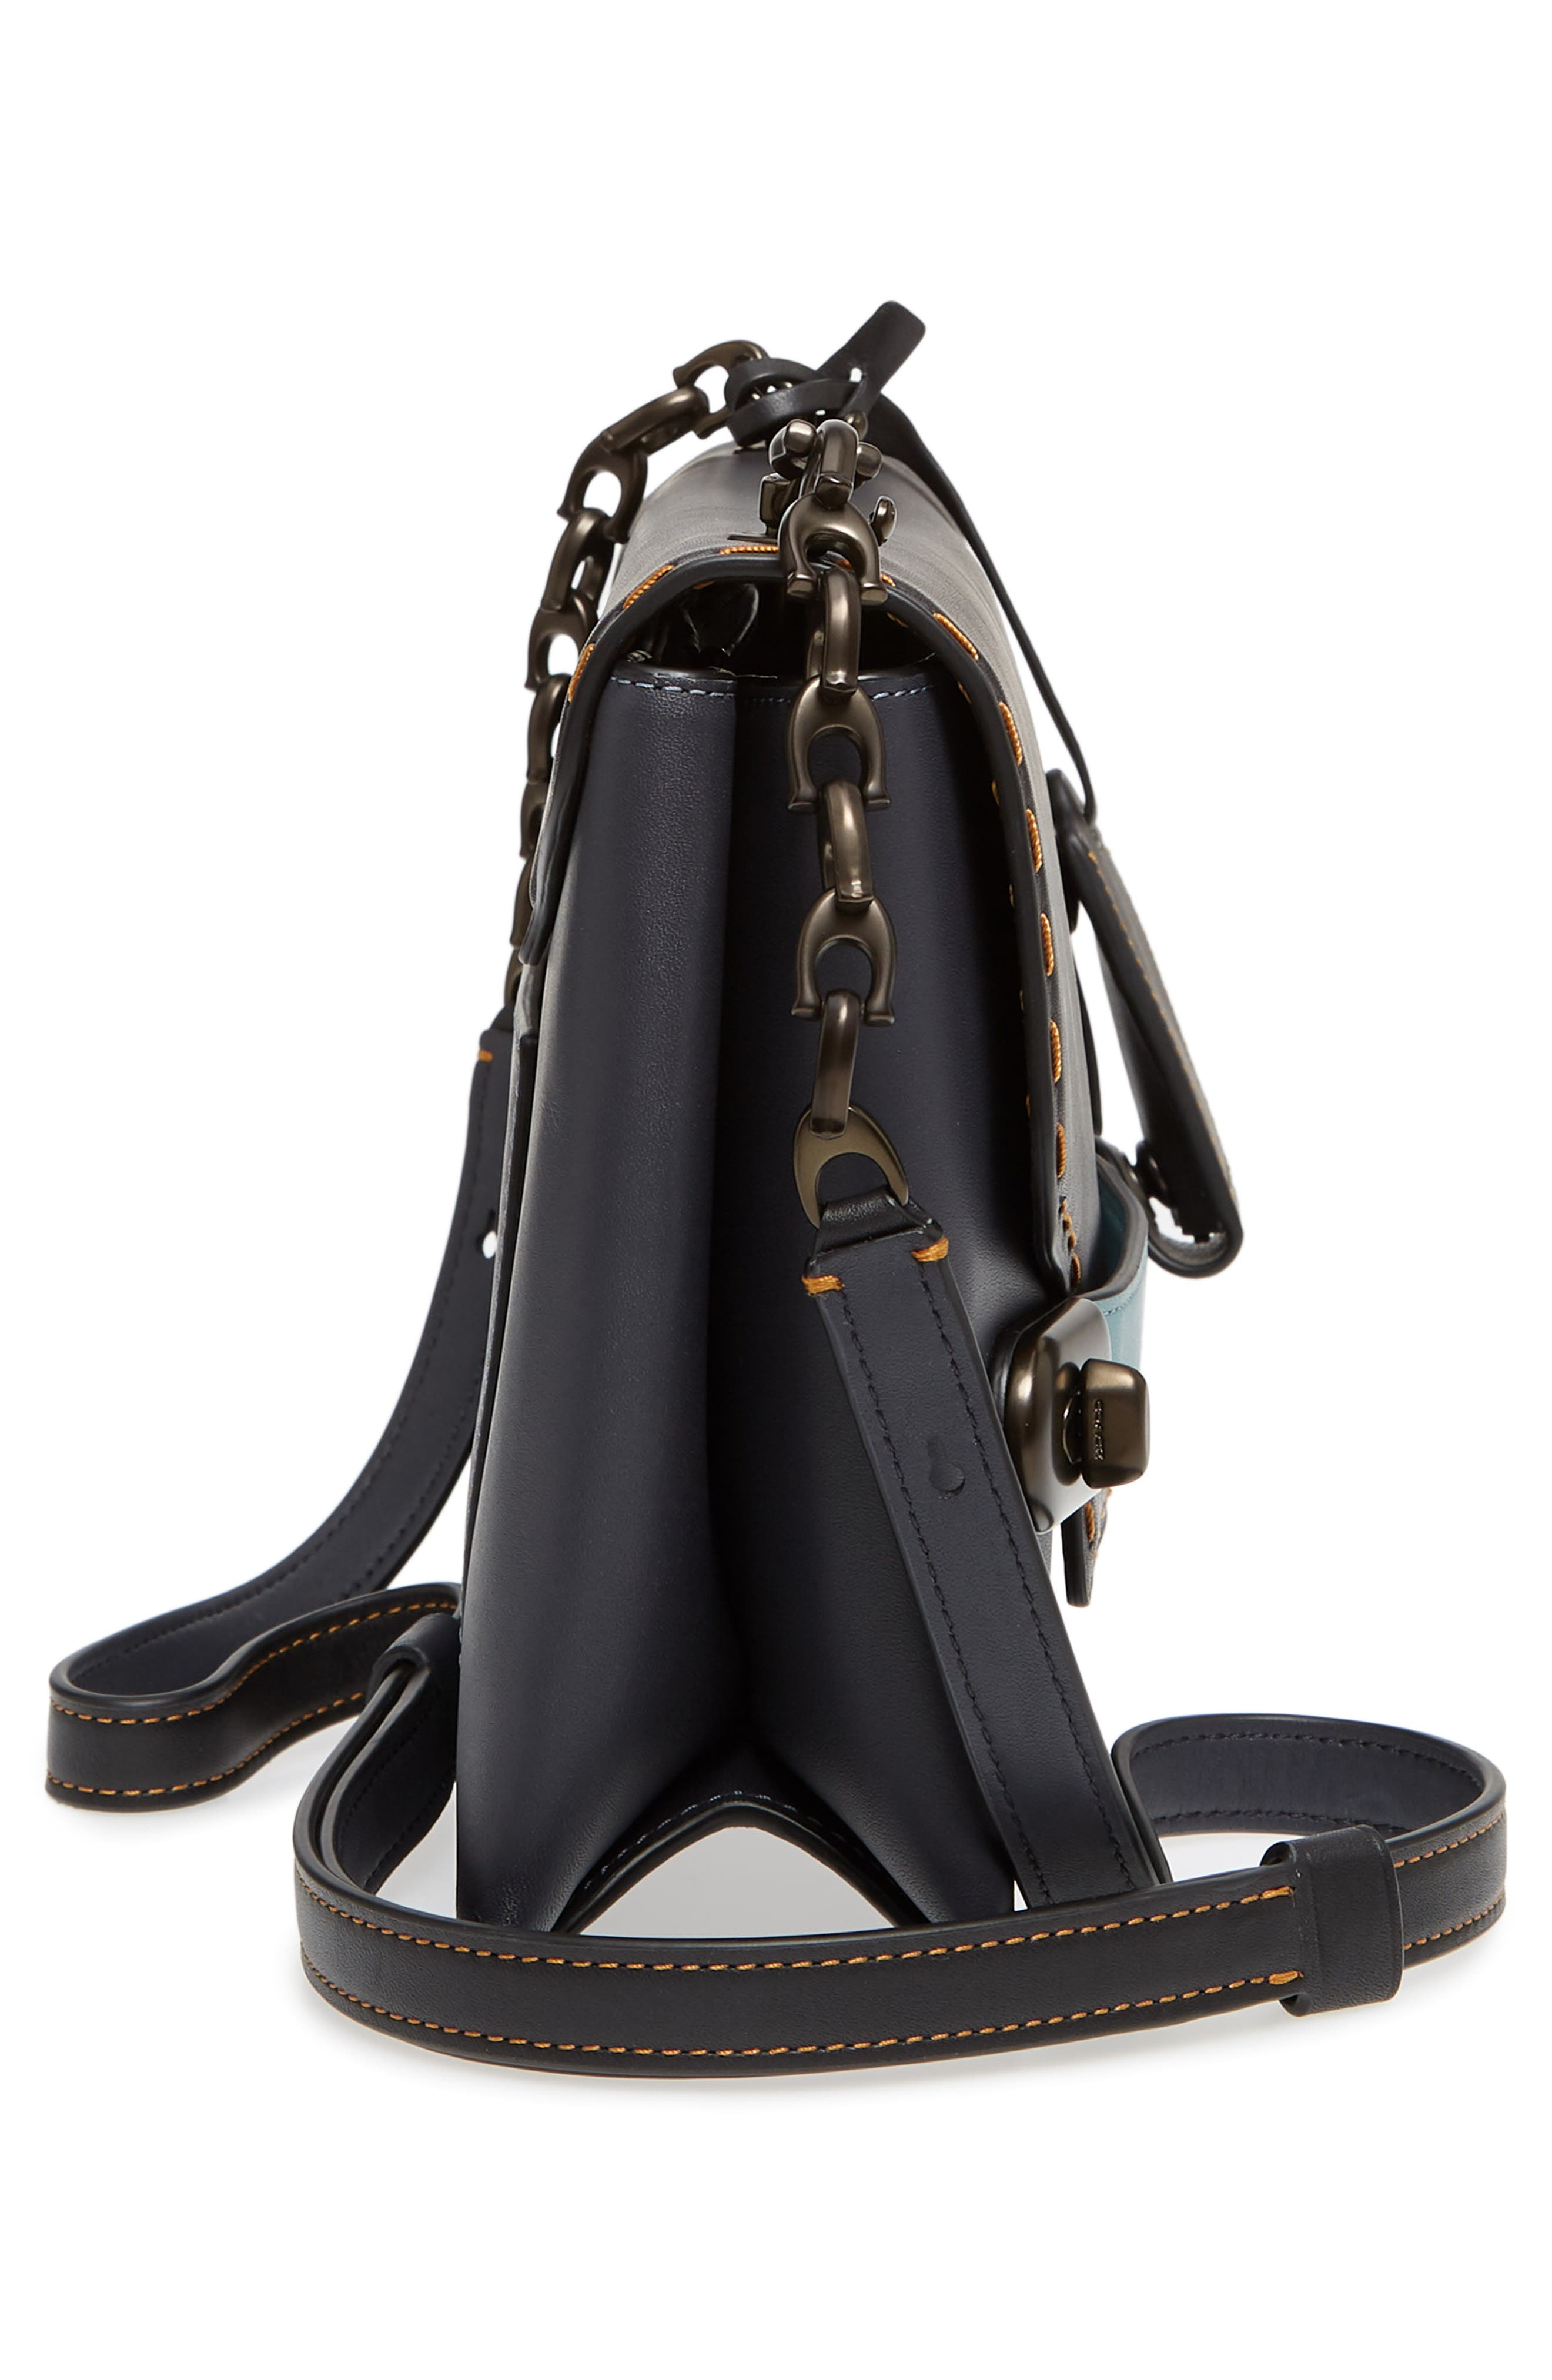 Swagger Chain Leather Crossbody Bag,                             Alternate thumbnail 5, color,                             428